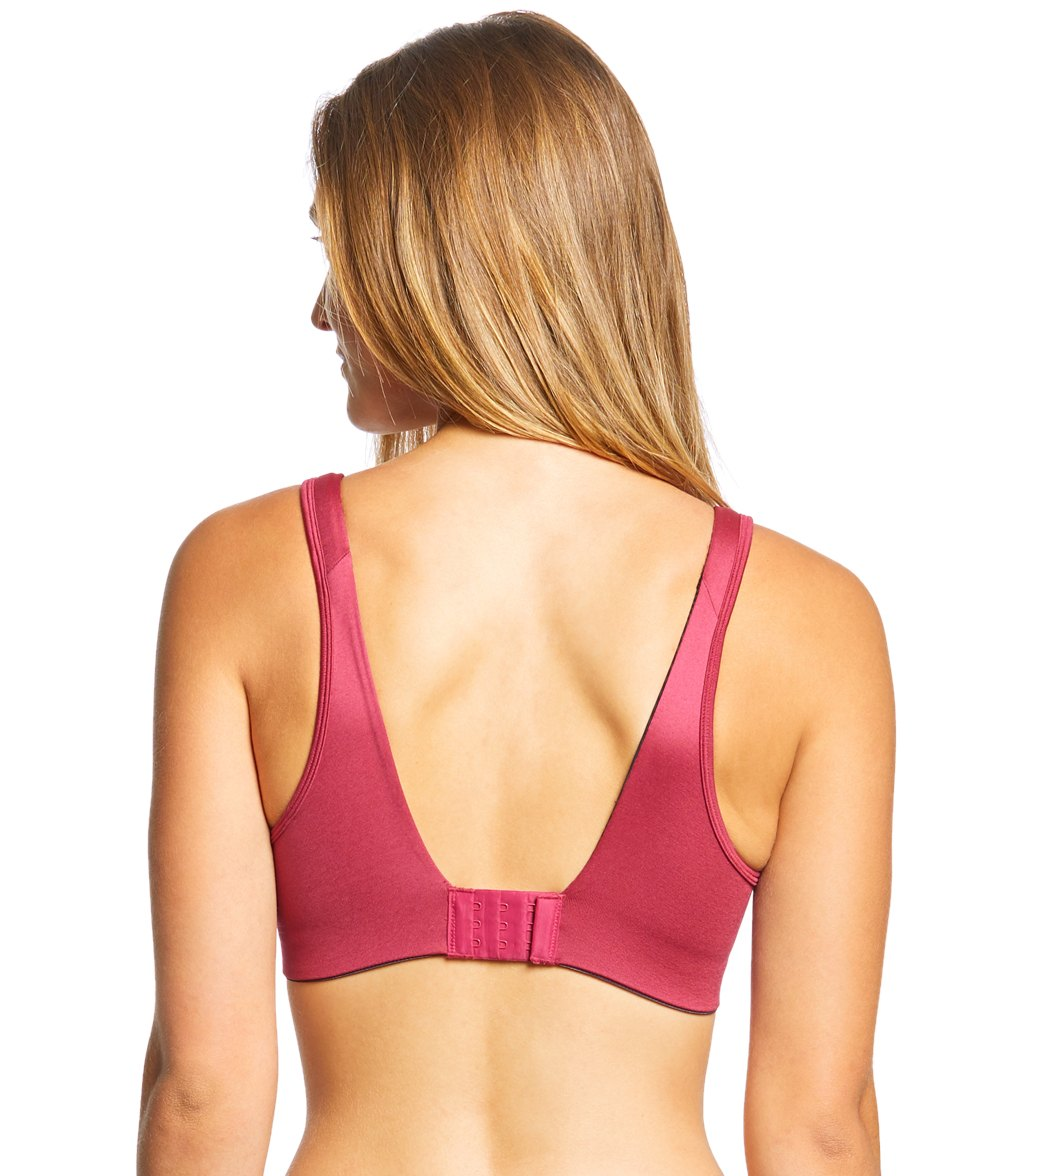 627981c4b2 Brooks Women s Fiona Sports Bra at SwimOutlet.com - Free Shipping